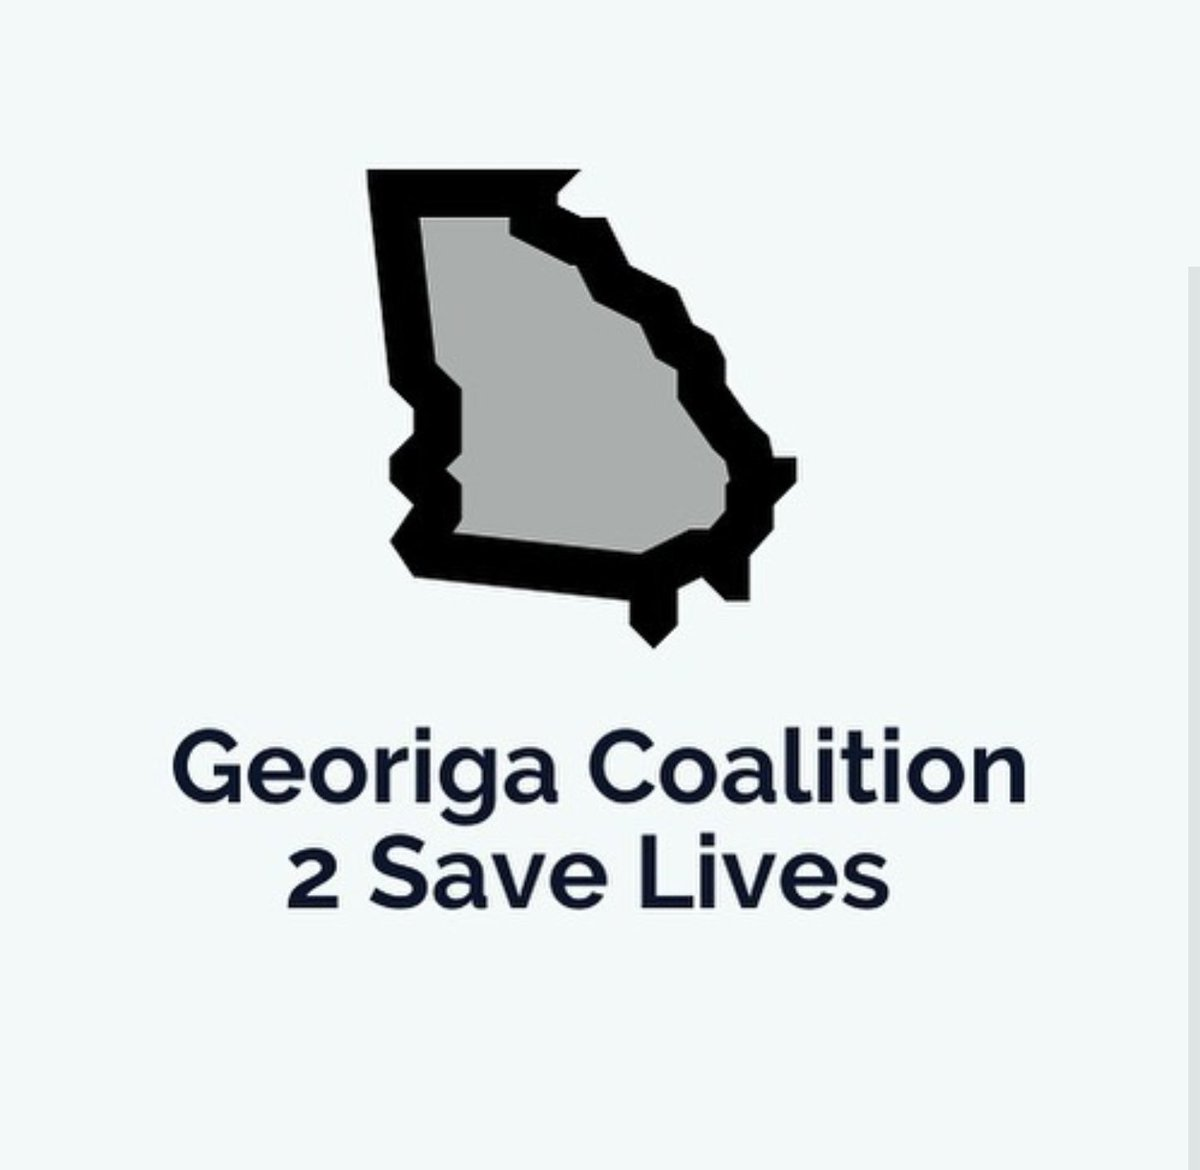 Calling on @GovKemp! Meet NOW with #GAcoalition2savelives. Communities of color bear the brunt of #COVID19. They must have a seat at the table to make a plan. #KempMeetNow https://t.co/BK1akQnYj2  #Georgia   #BlackTwitter #BlackTwitterMovement  #Atlanta  #ATL https://t.co/vPwYgnrqfx